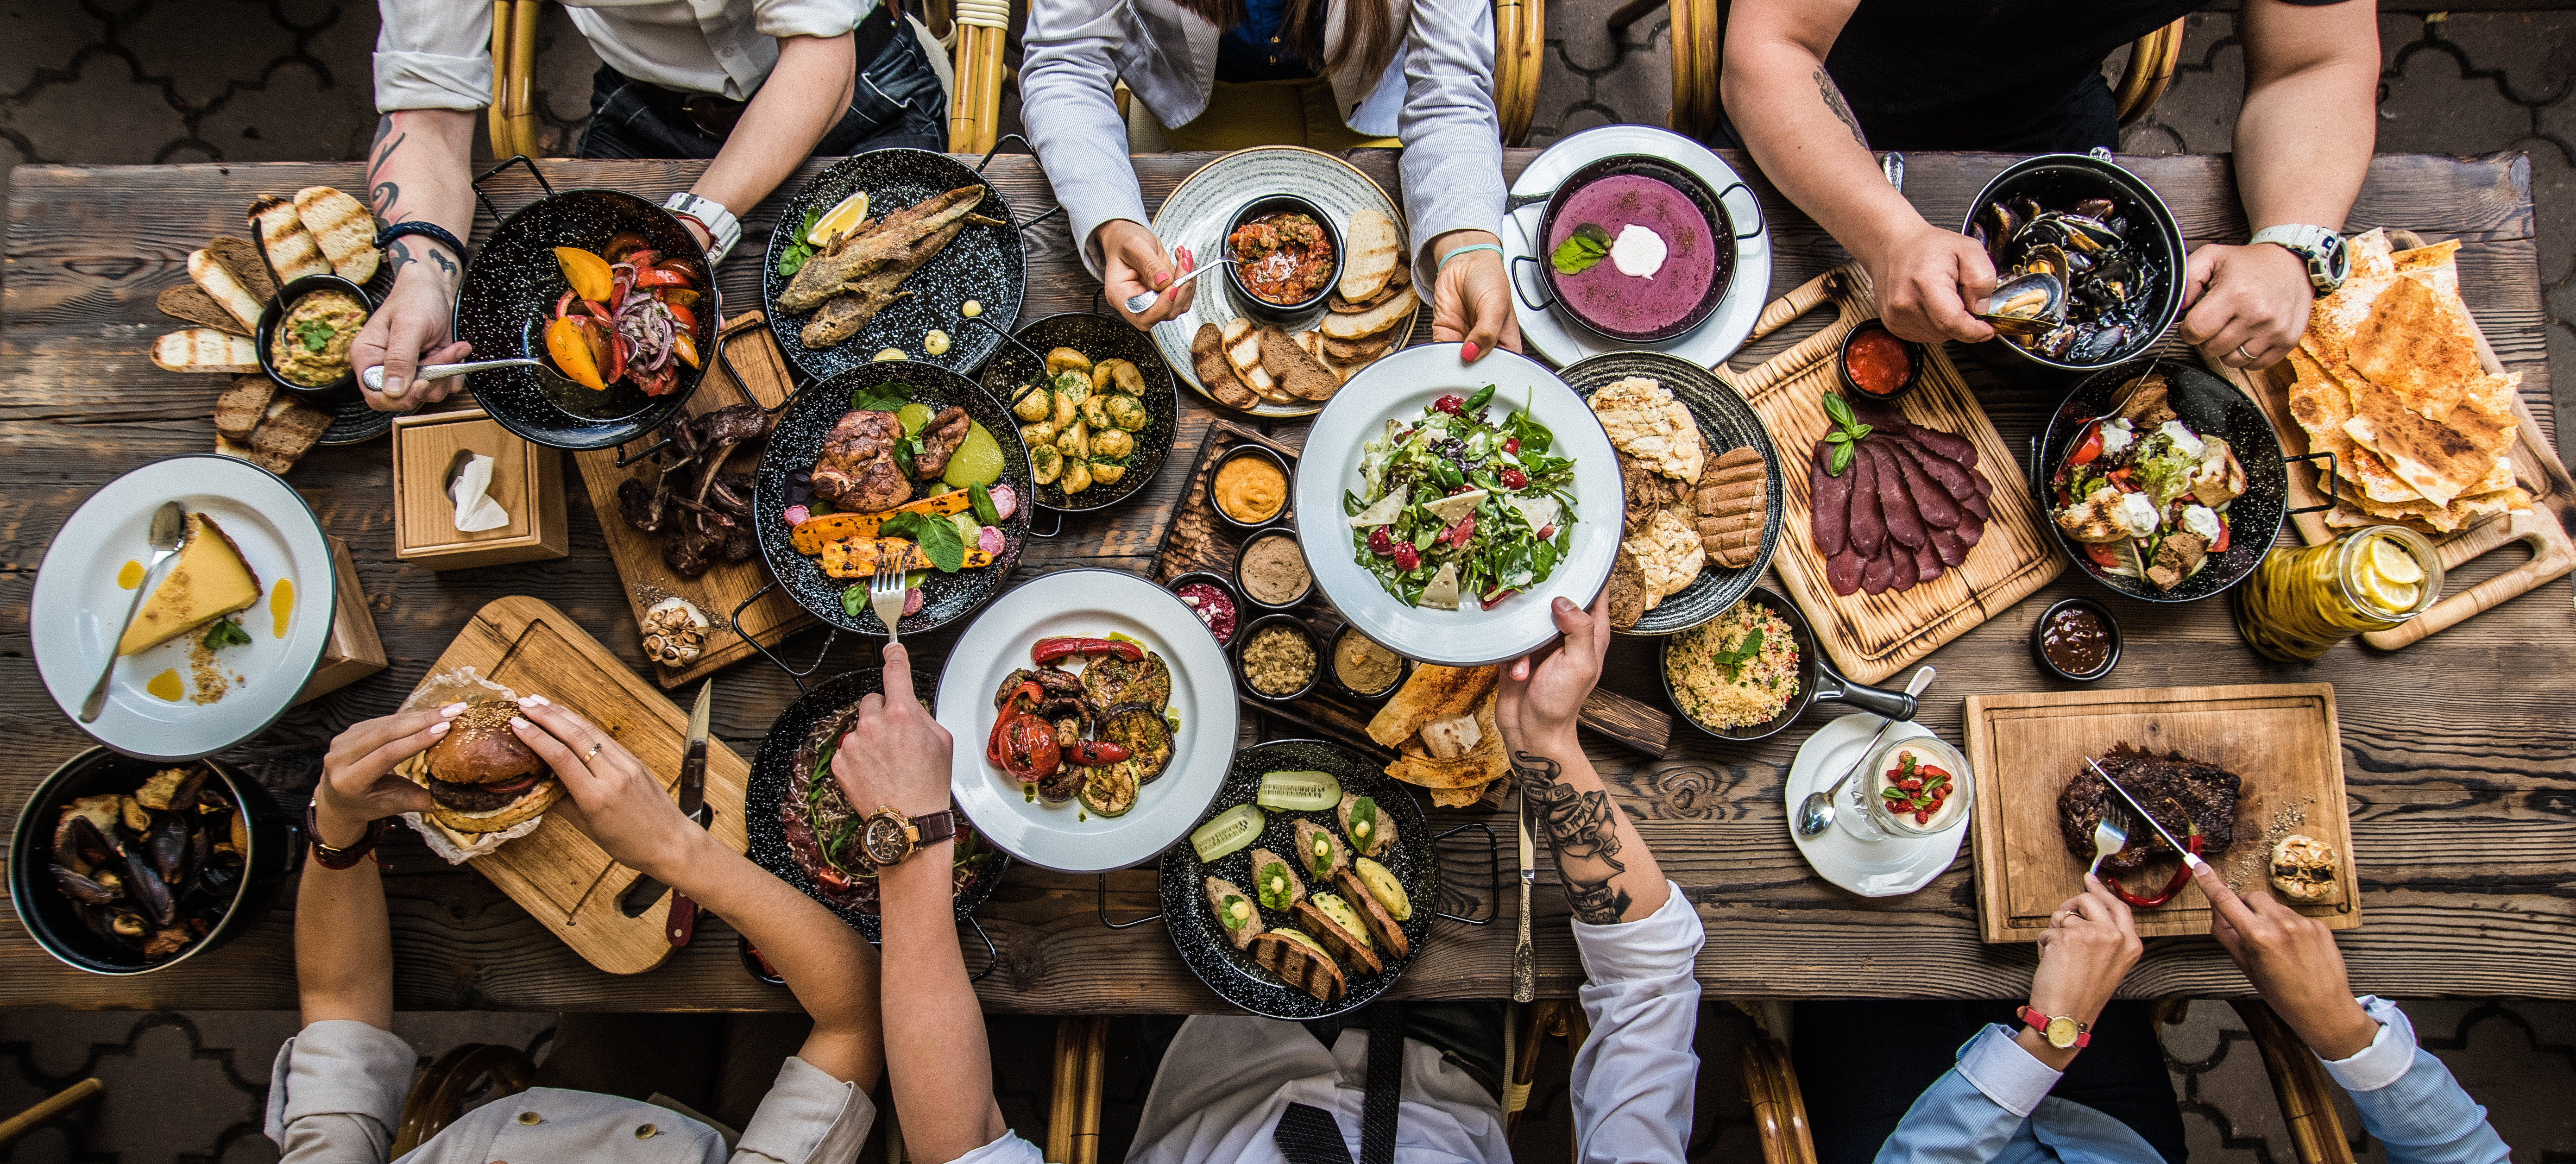 A Defense of Highly Curated (and Strange!) Diets